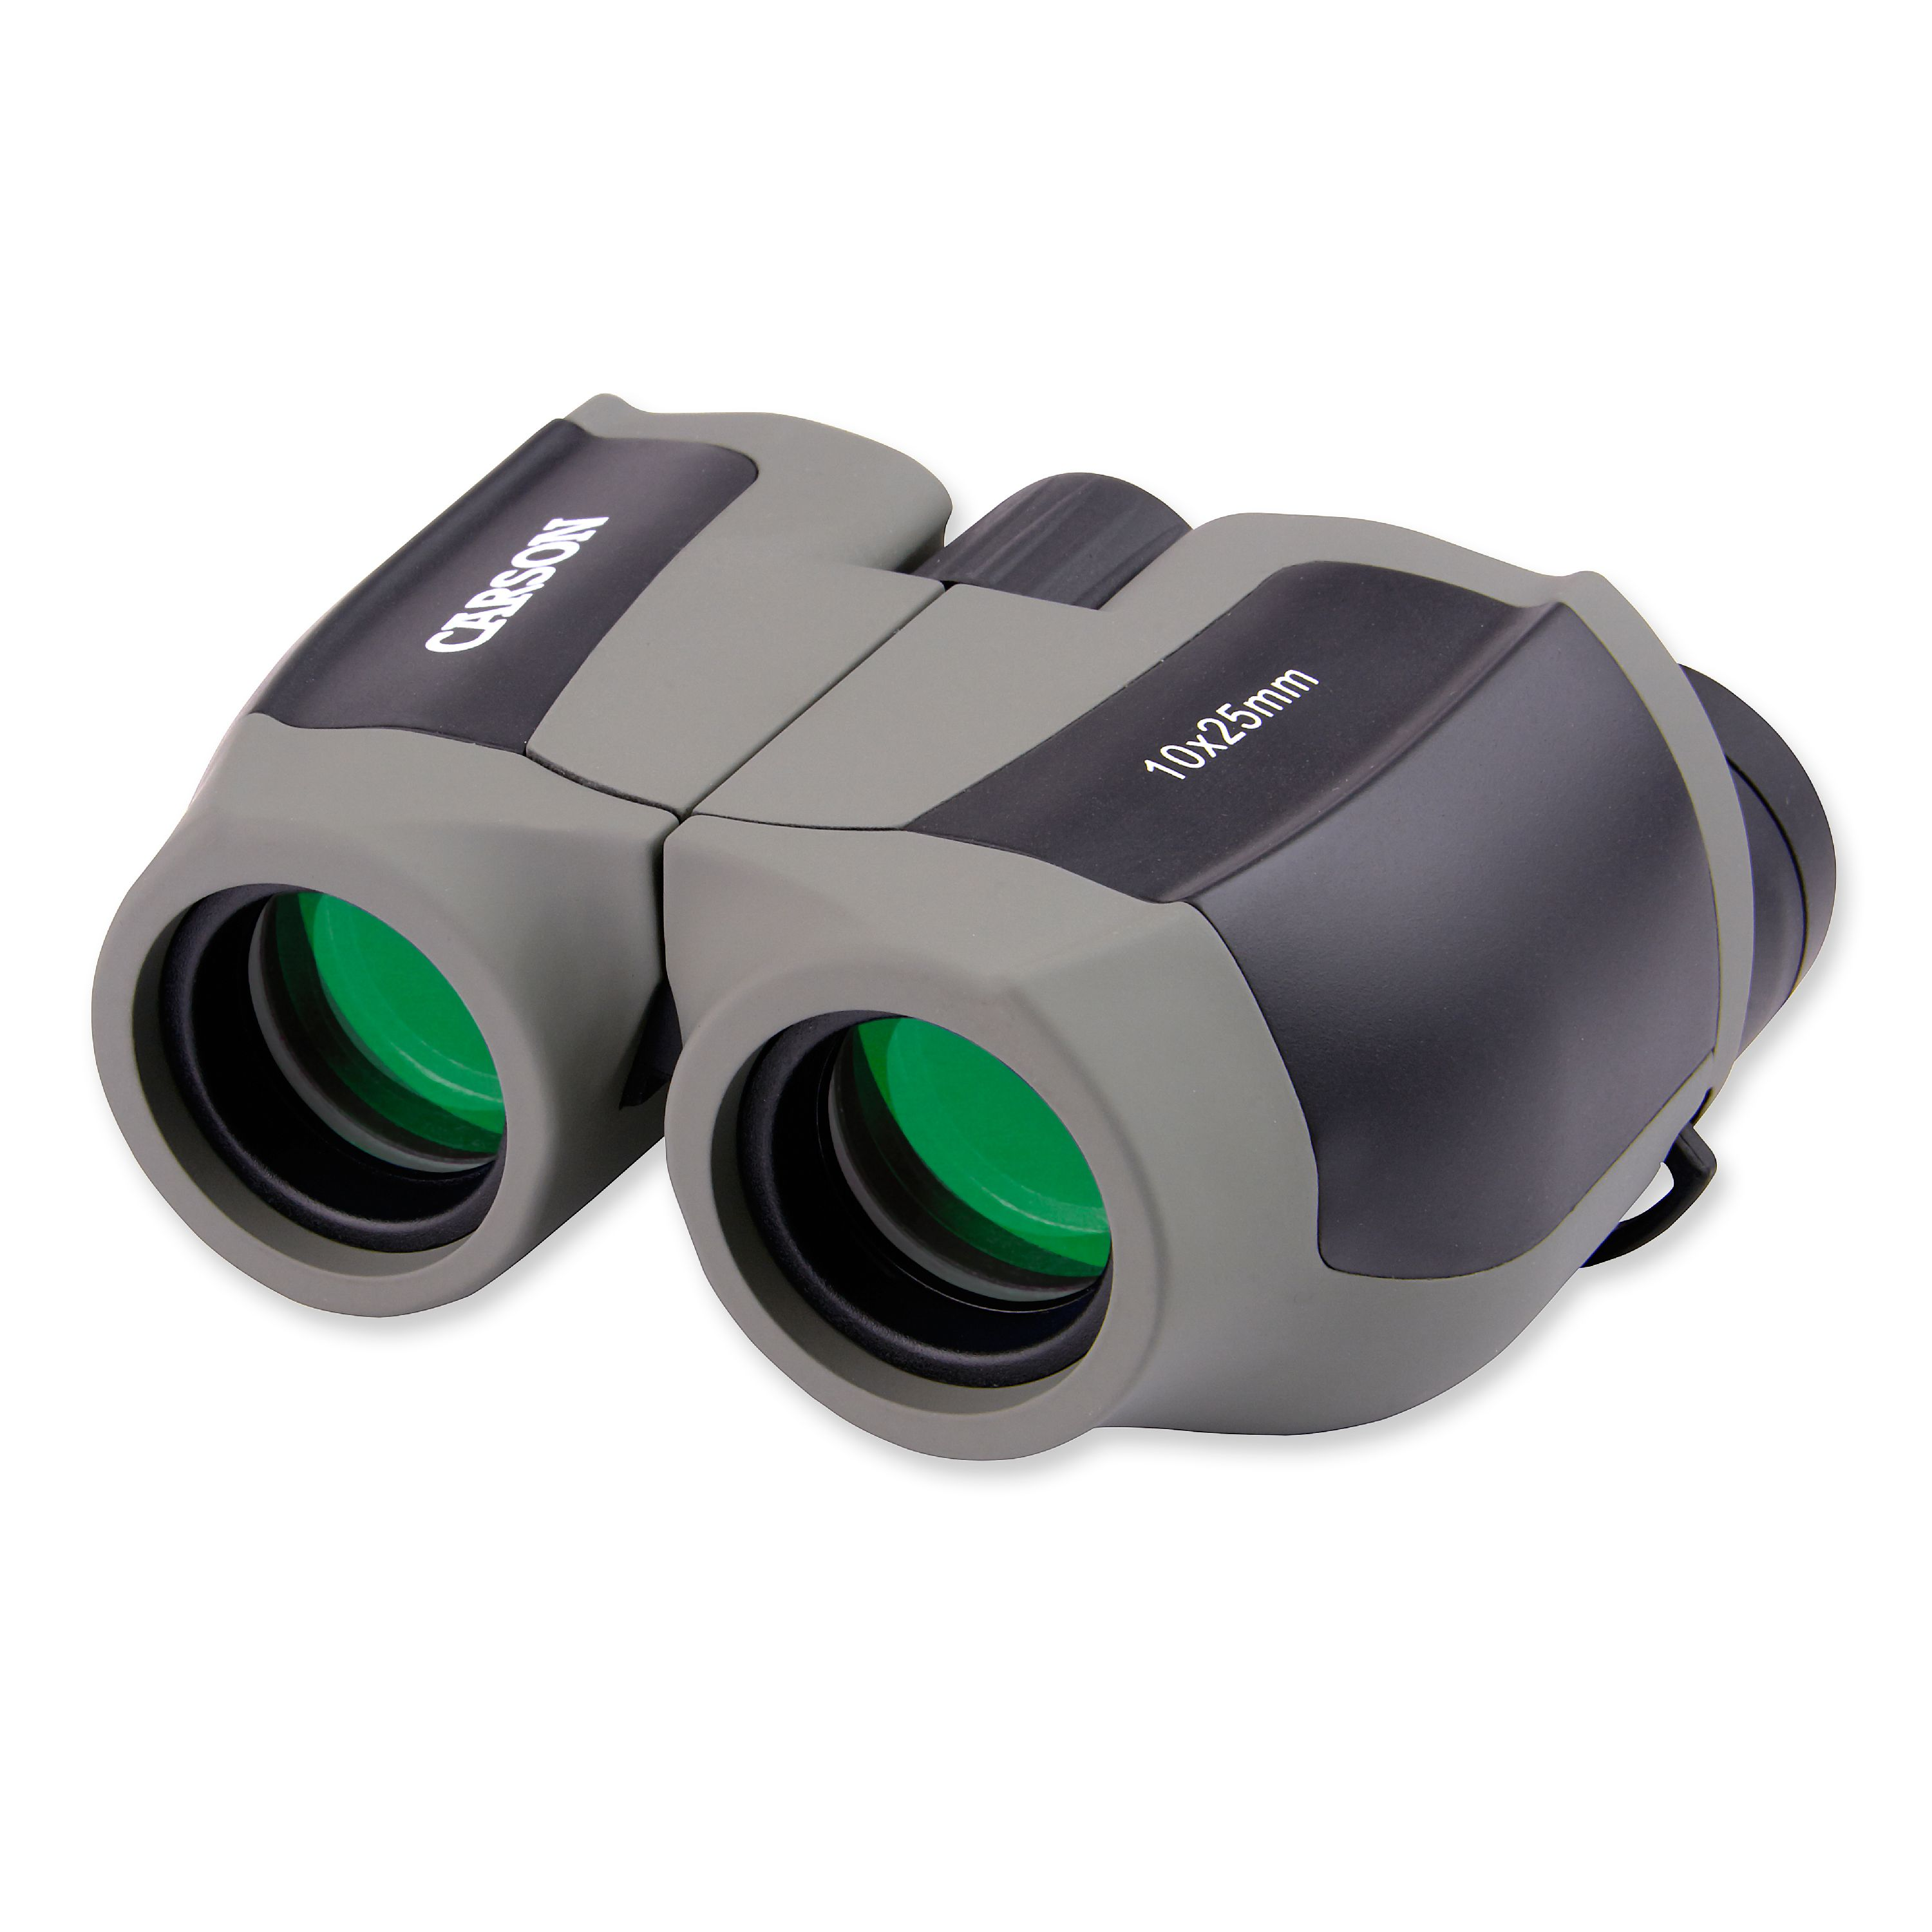 Carson 10x25mm Scout Series Compact Binoculars